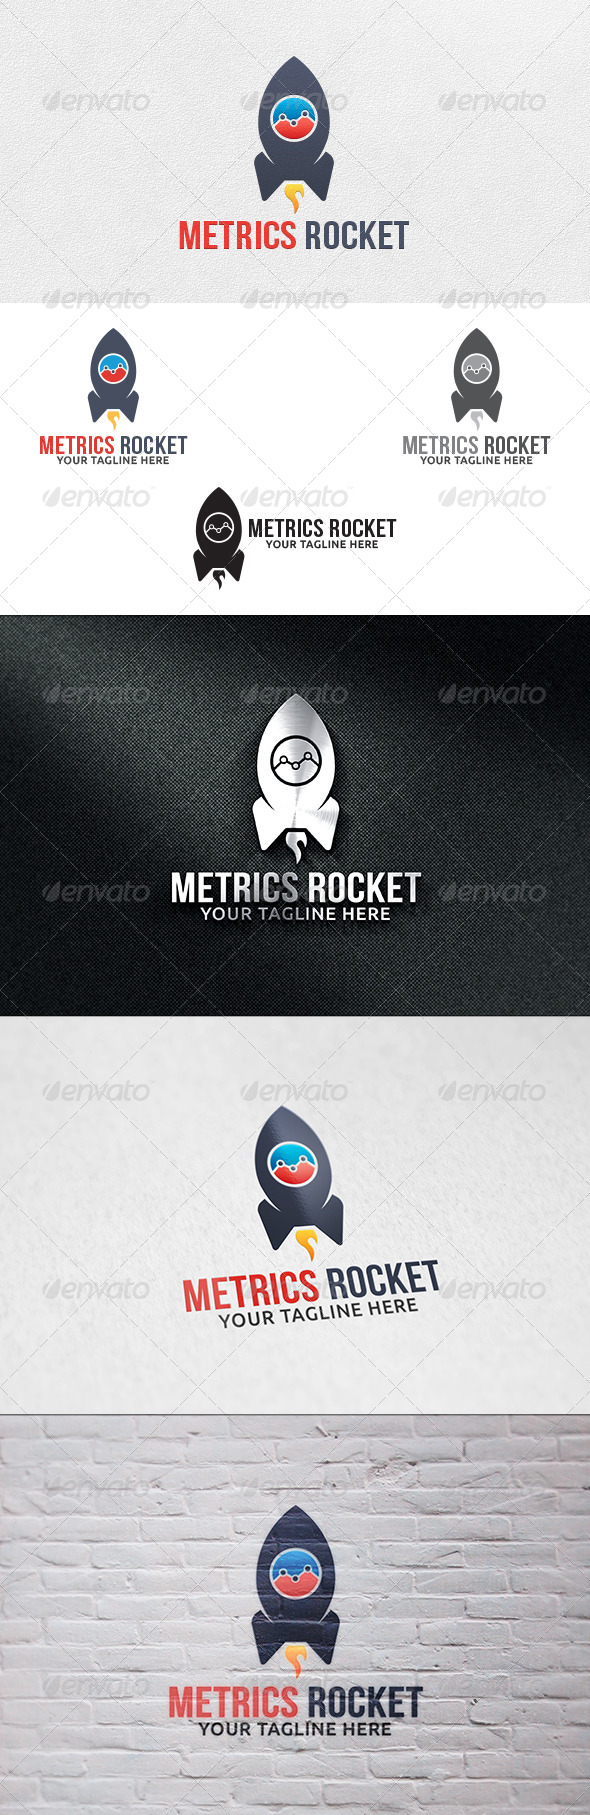 GraphicRiver Metrics Rocket Logo Template 6312639